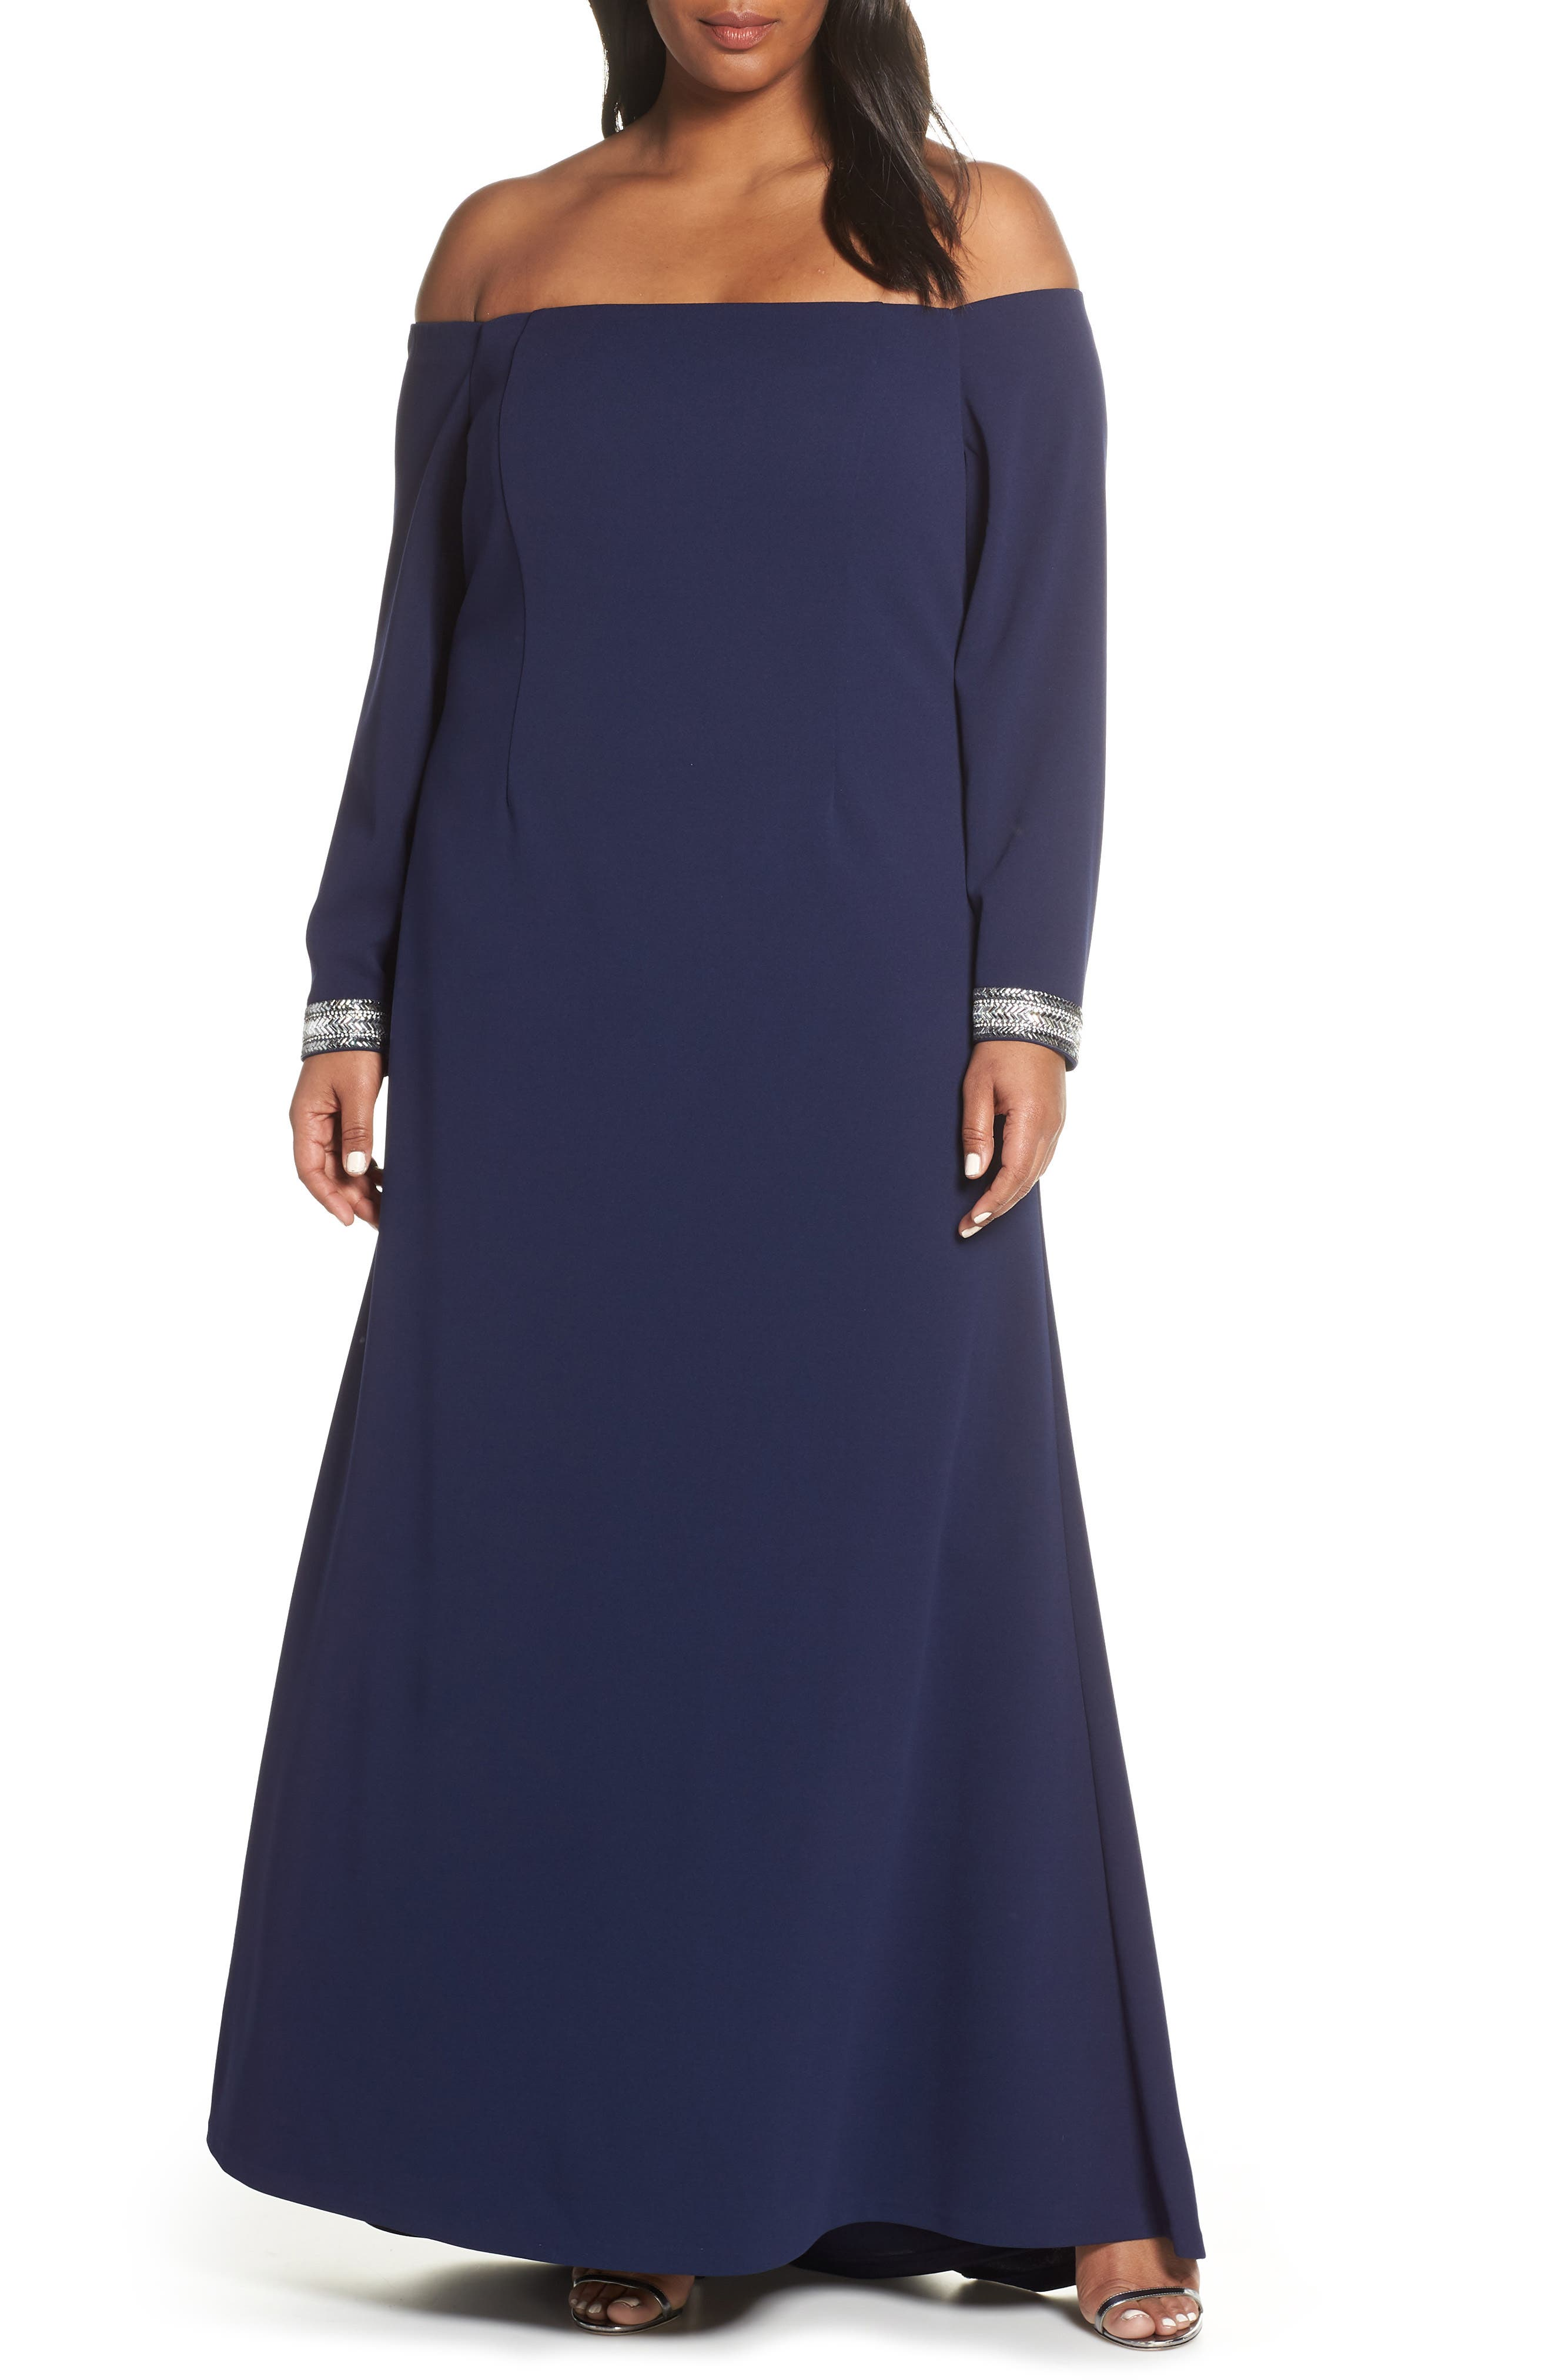 Plus Size Vince Camuto Crystal Cuff Off The Shoulder Long Sleeve Crepe Dress, Blue